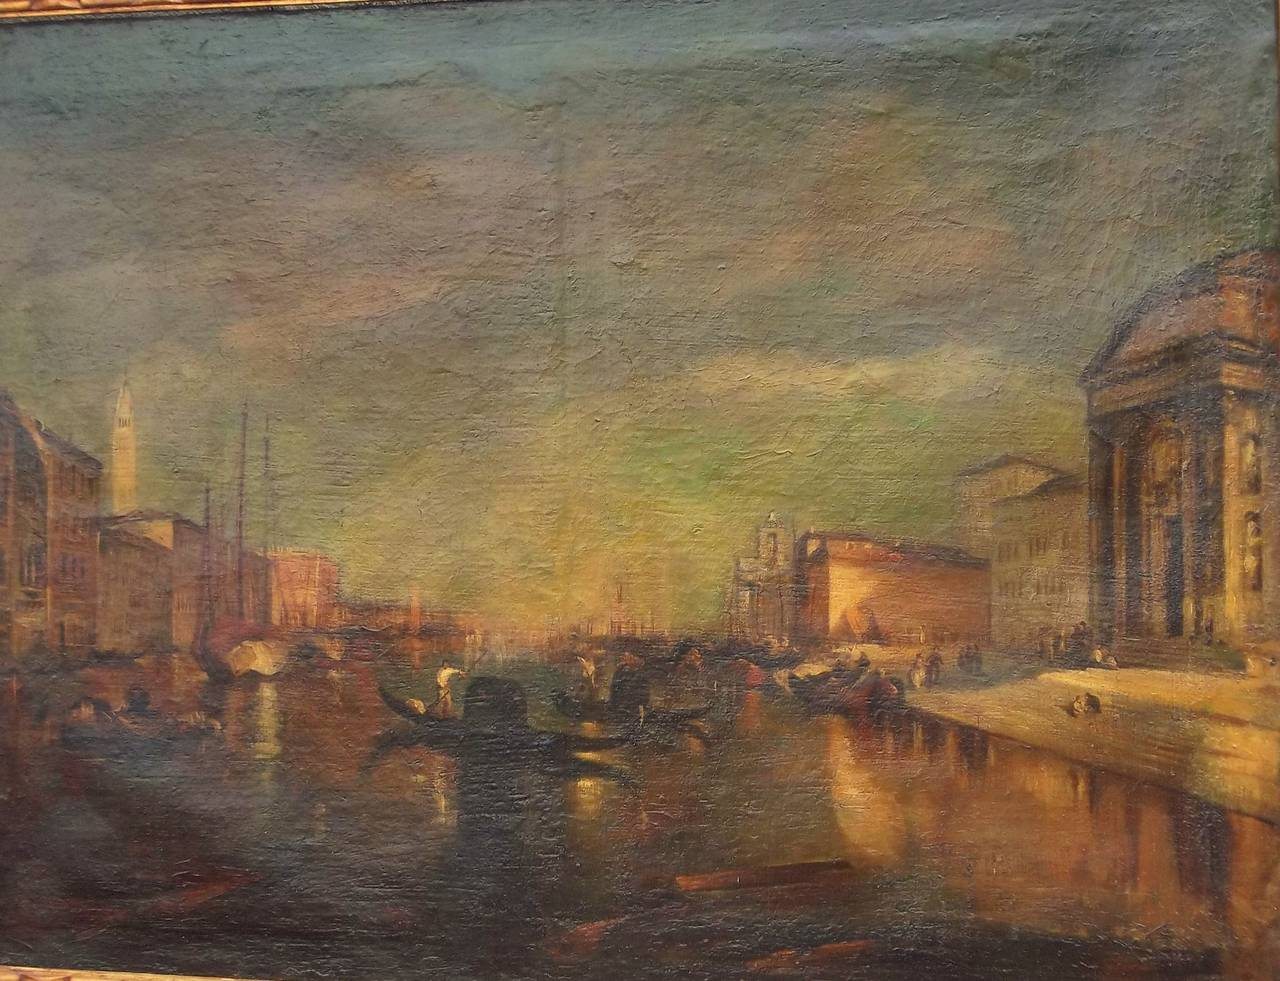 jmw turner and the walton bridge essay The relationships in 'a view from the bridge' are very complex as because of people's attitudes back then there is secrecy, suspicion, love and concern.